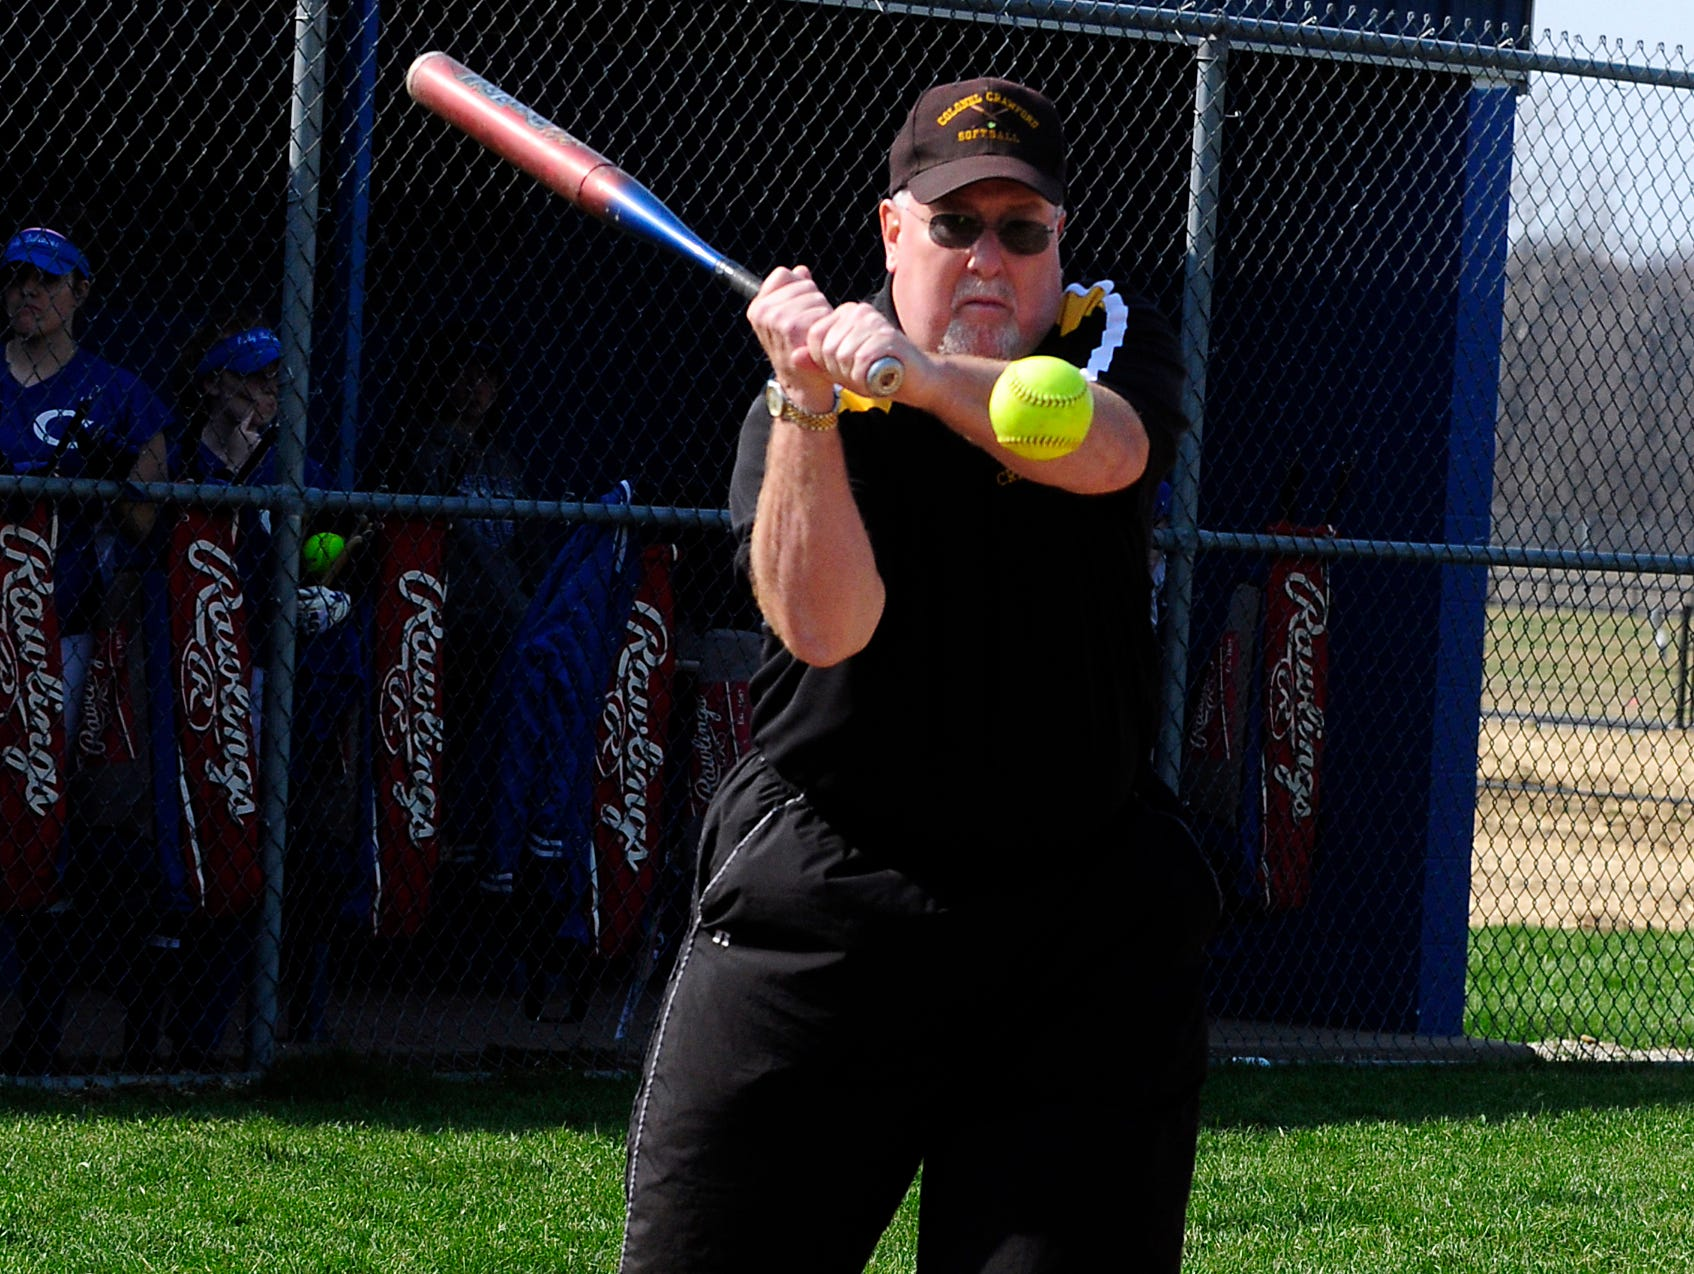 Colonel Crawford softball coach Chuck Huggins hits ground balls before a game. Huggins is a member of the state softball coaches hall of fame and is entering his 27th season with the Eagles.